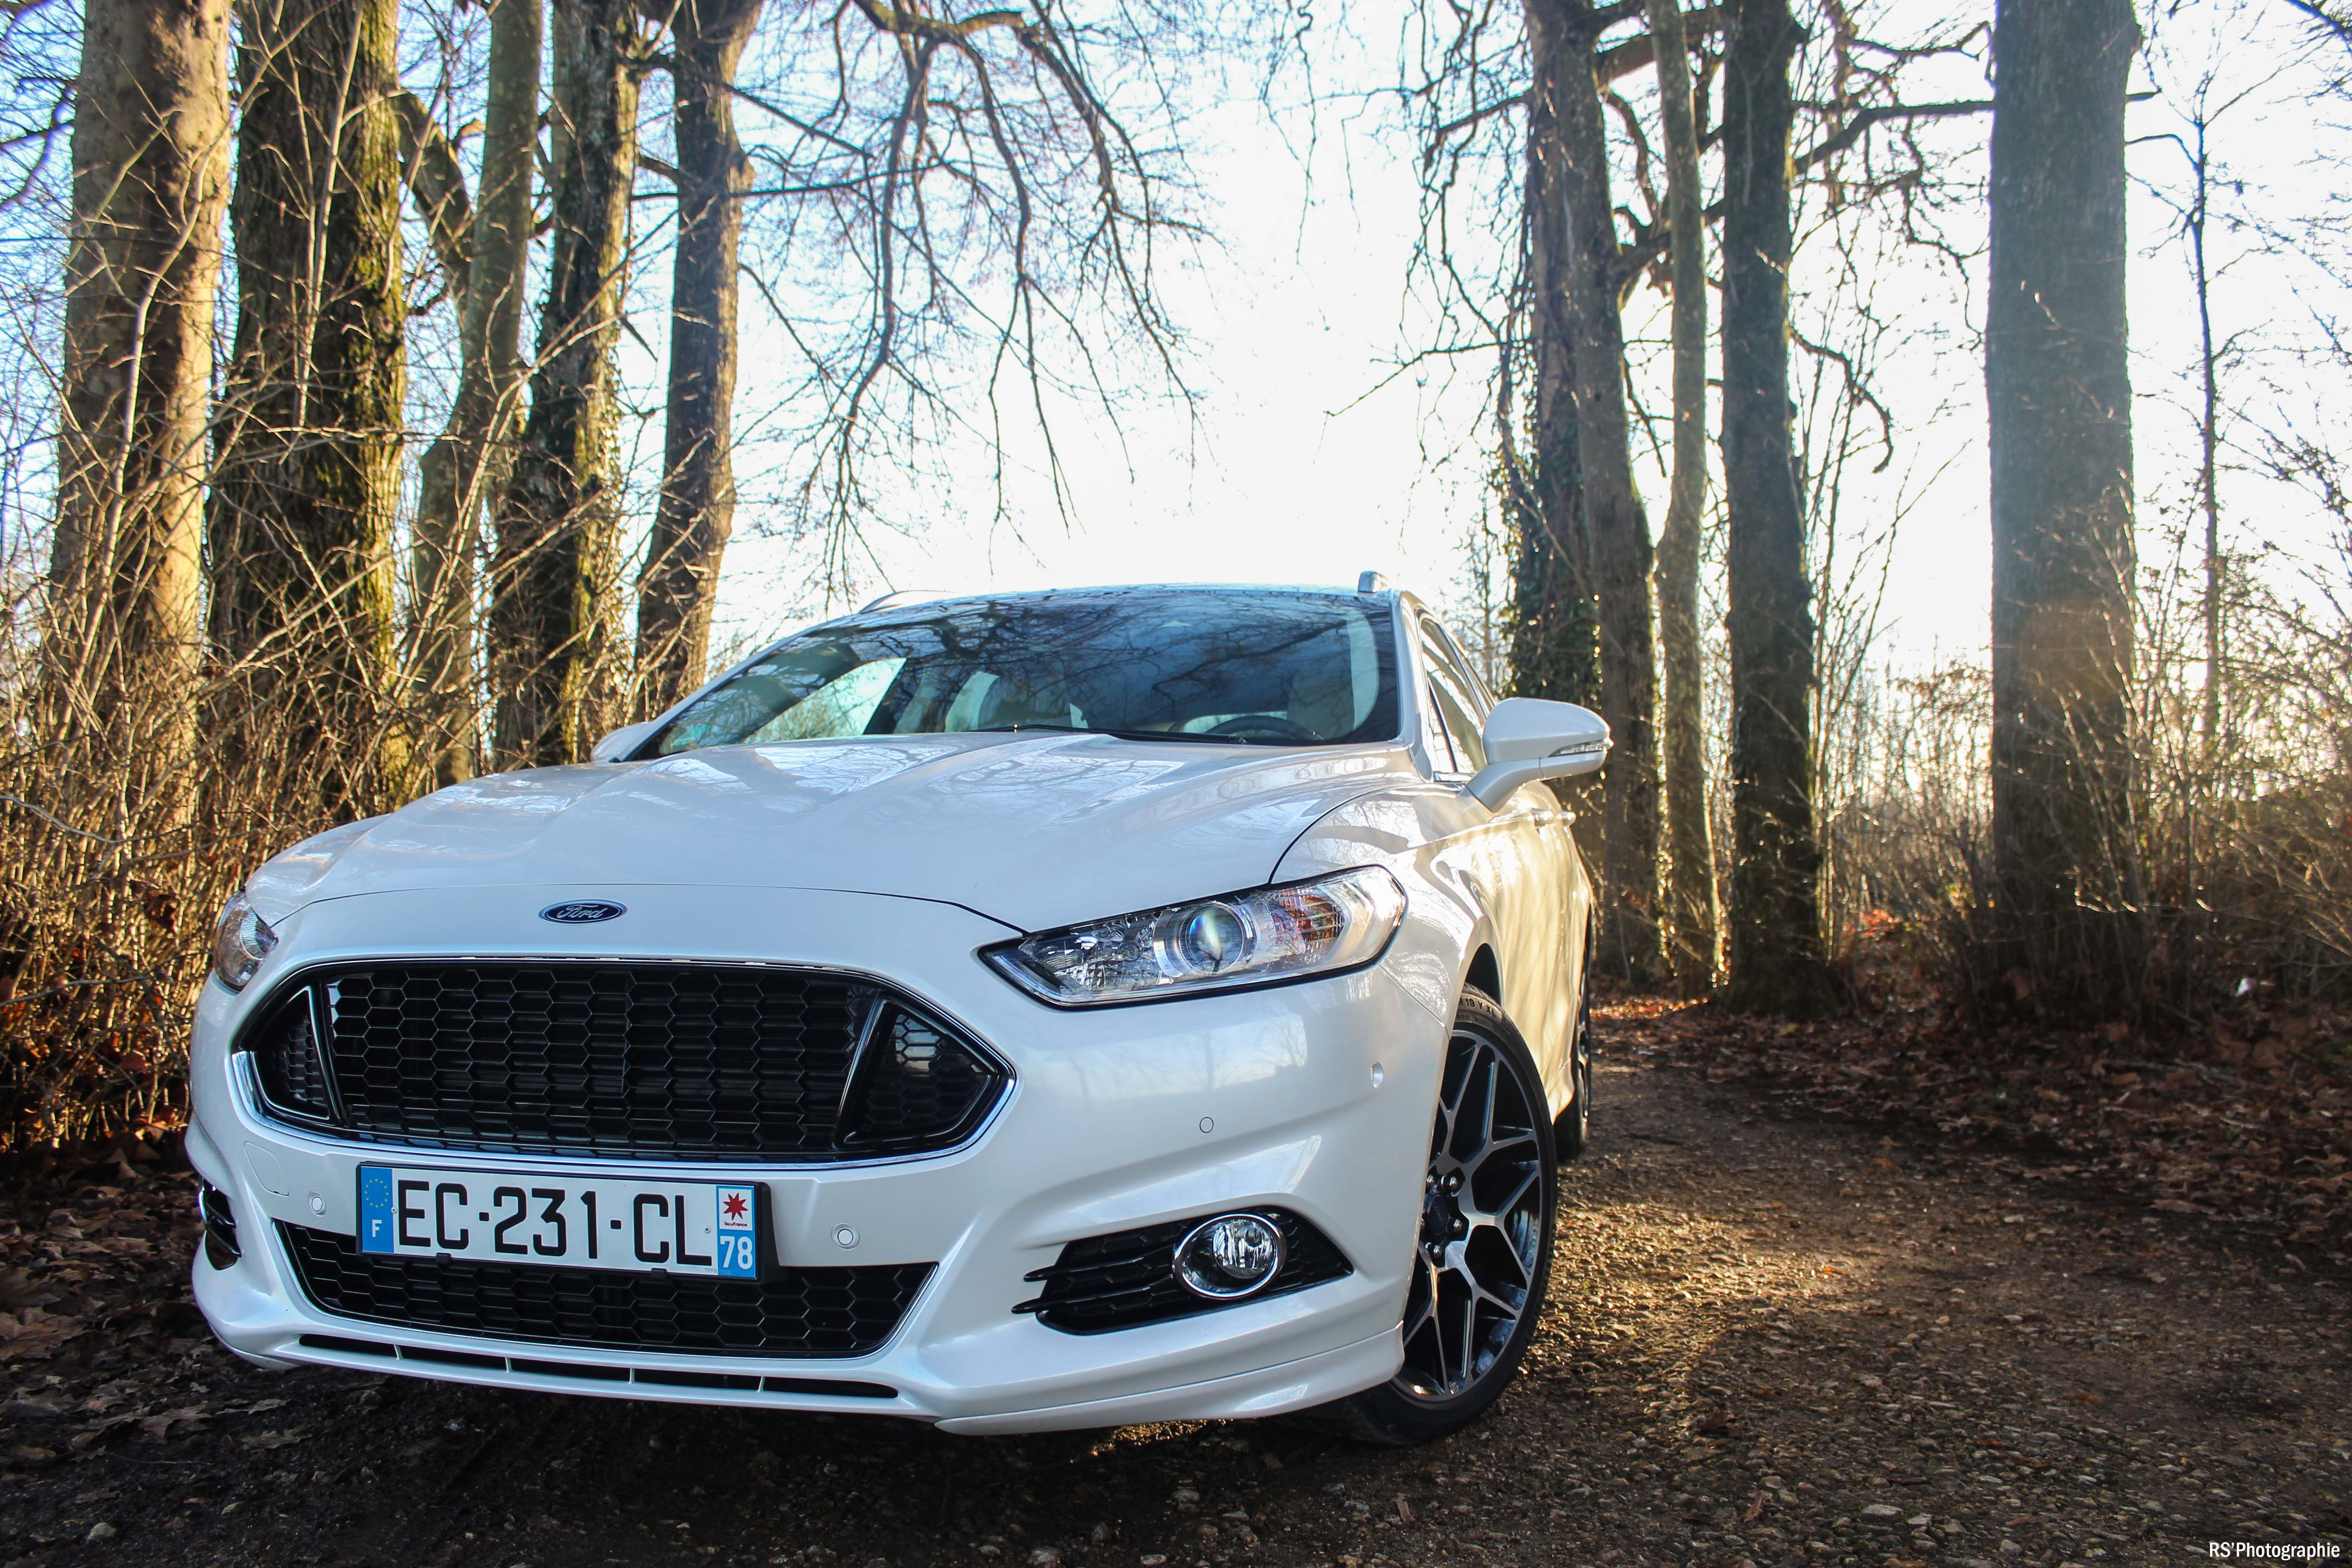 FordMondeoSW3-ford-mondeo-sw-180-avant-front-arnaud-demasier-rsphotographie